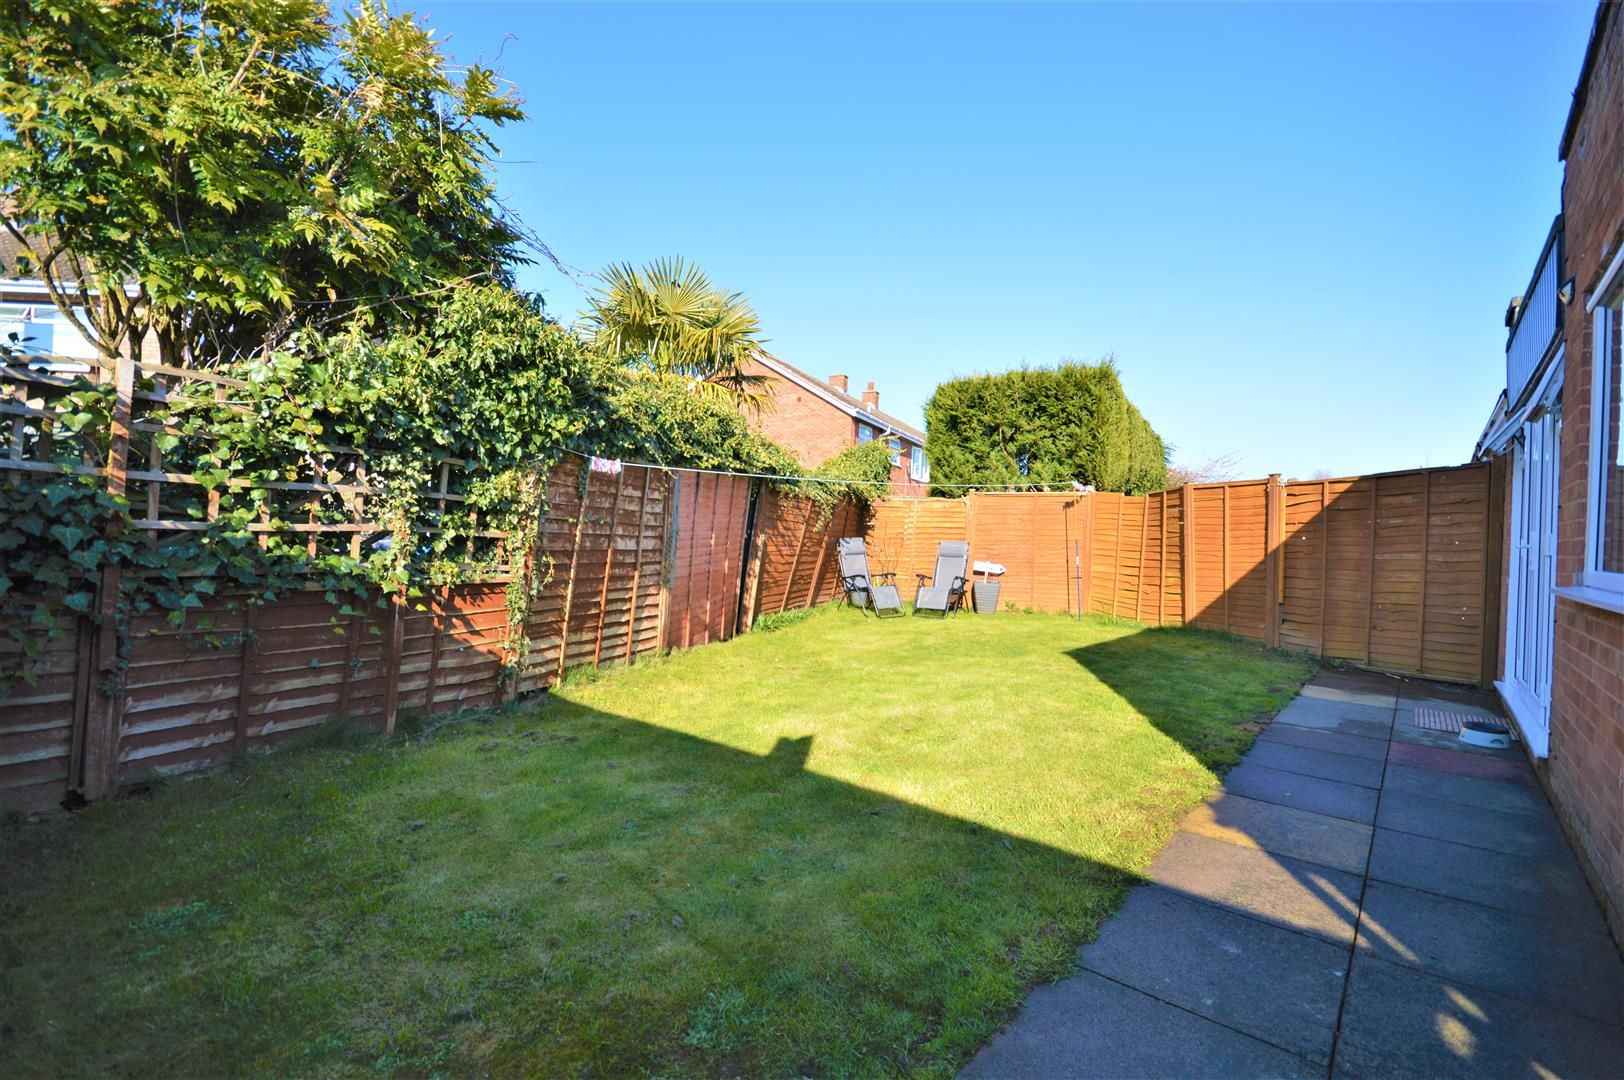 2 bed semi-detached-bungalow for sale in Marden 7